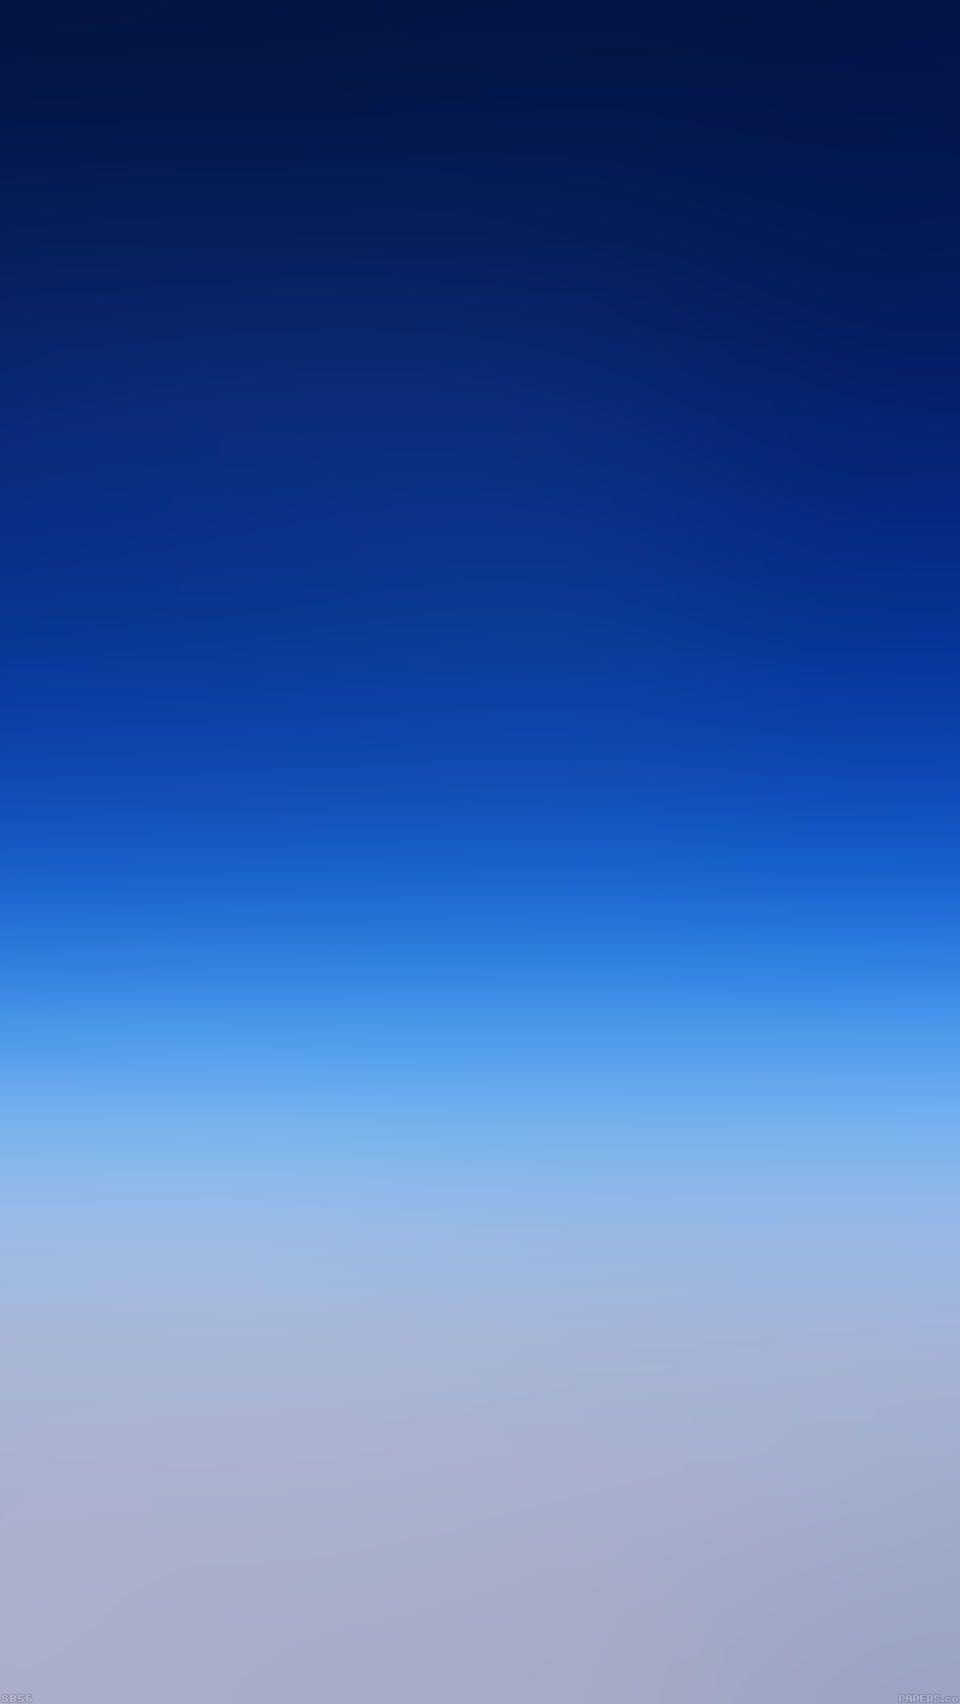 I Phone Wallpaper Google Zoeken Fond D Ecran Bleu Iphone Fond